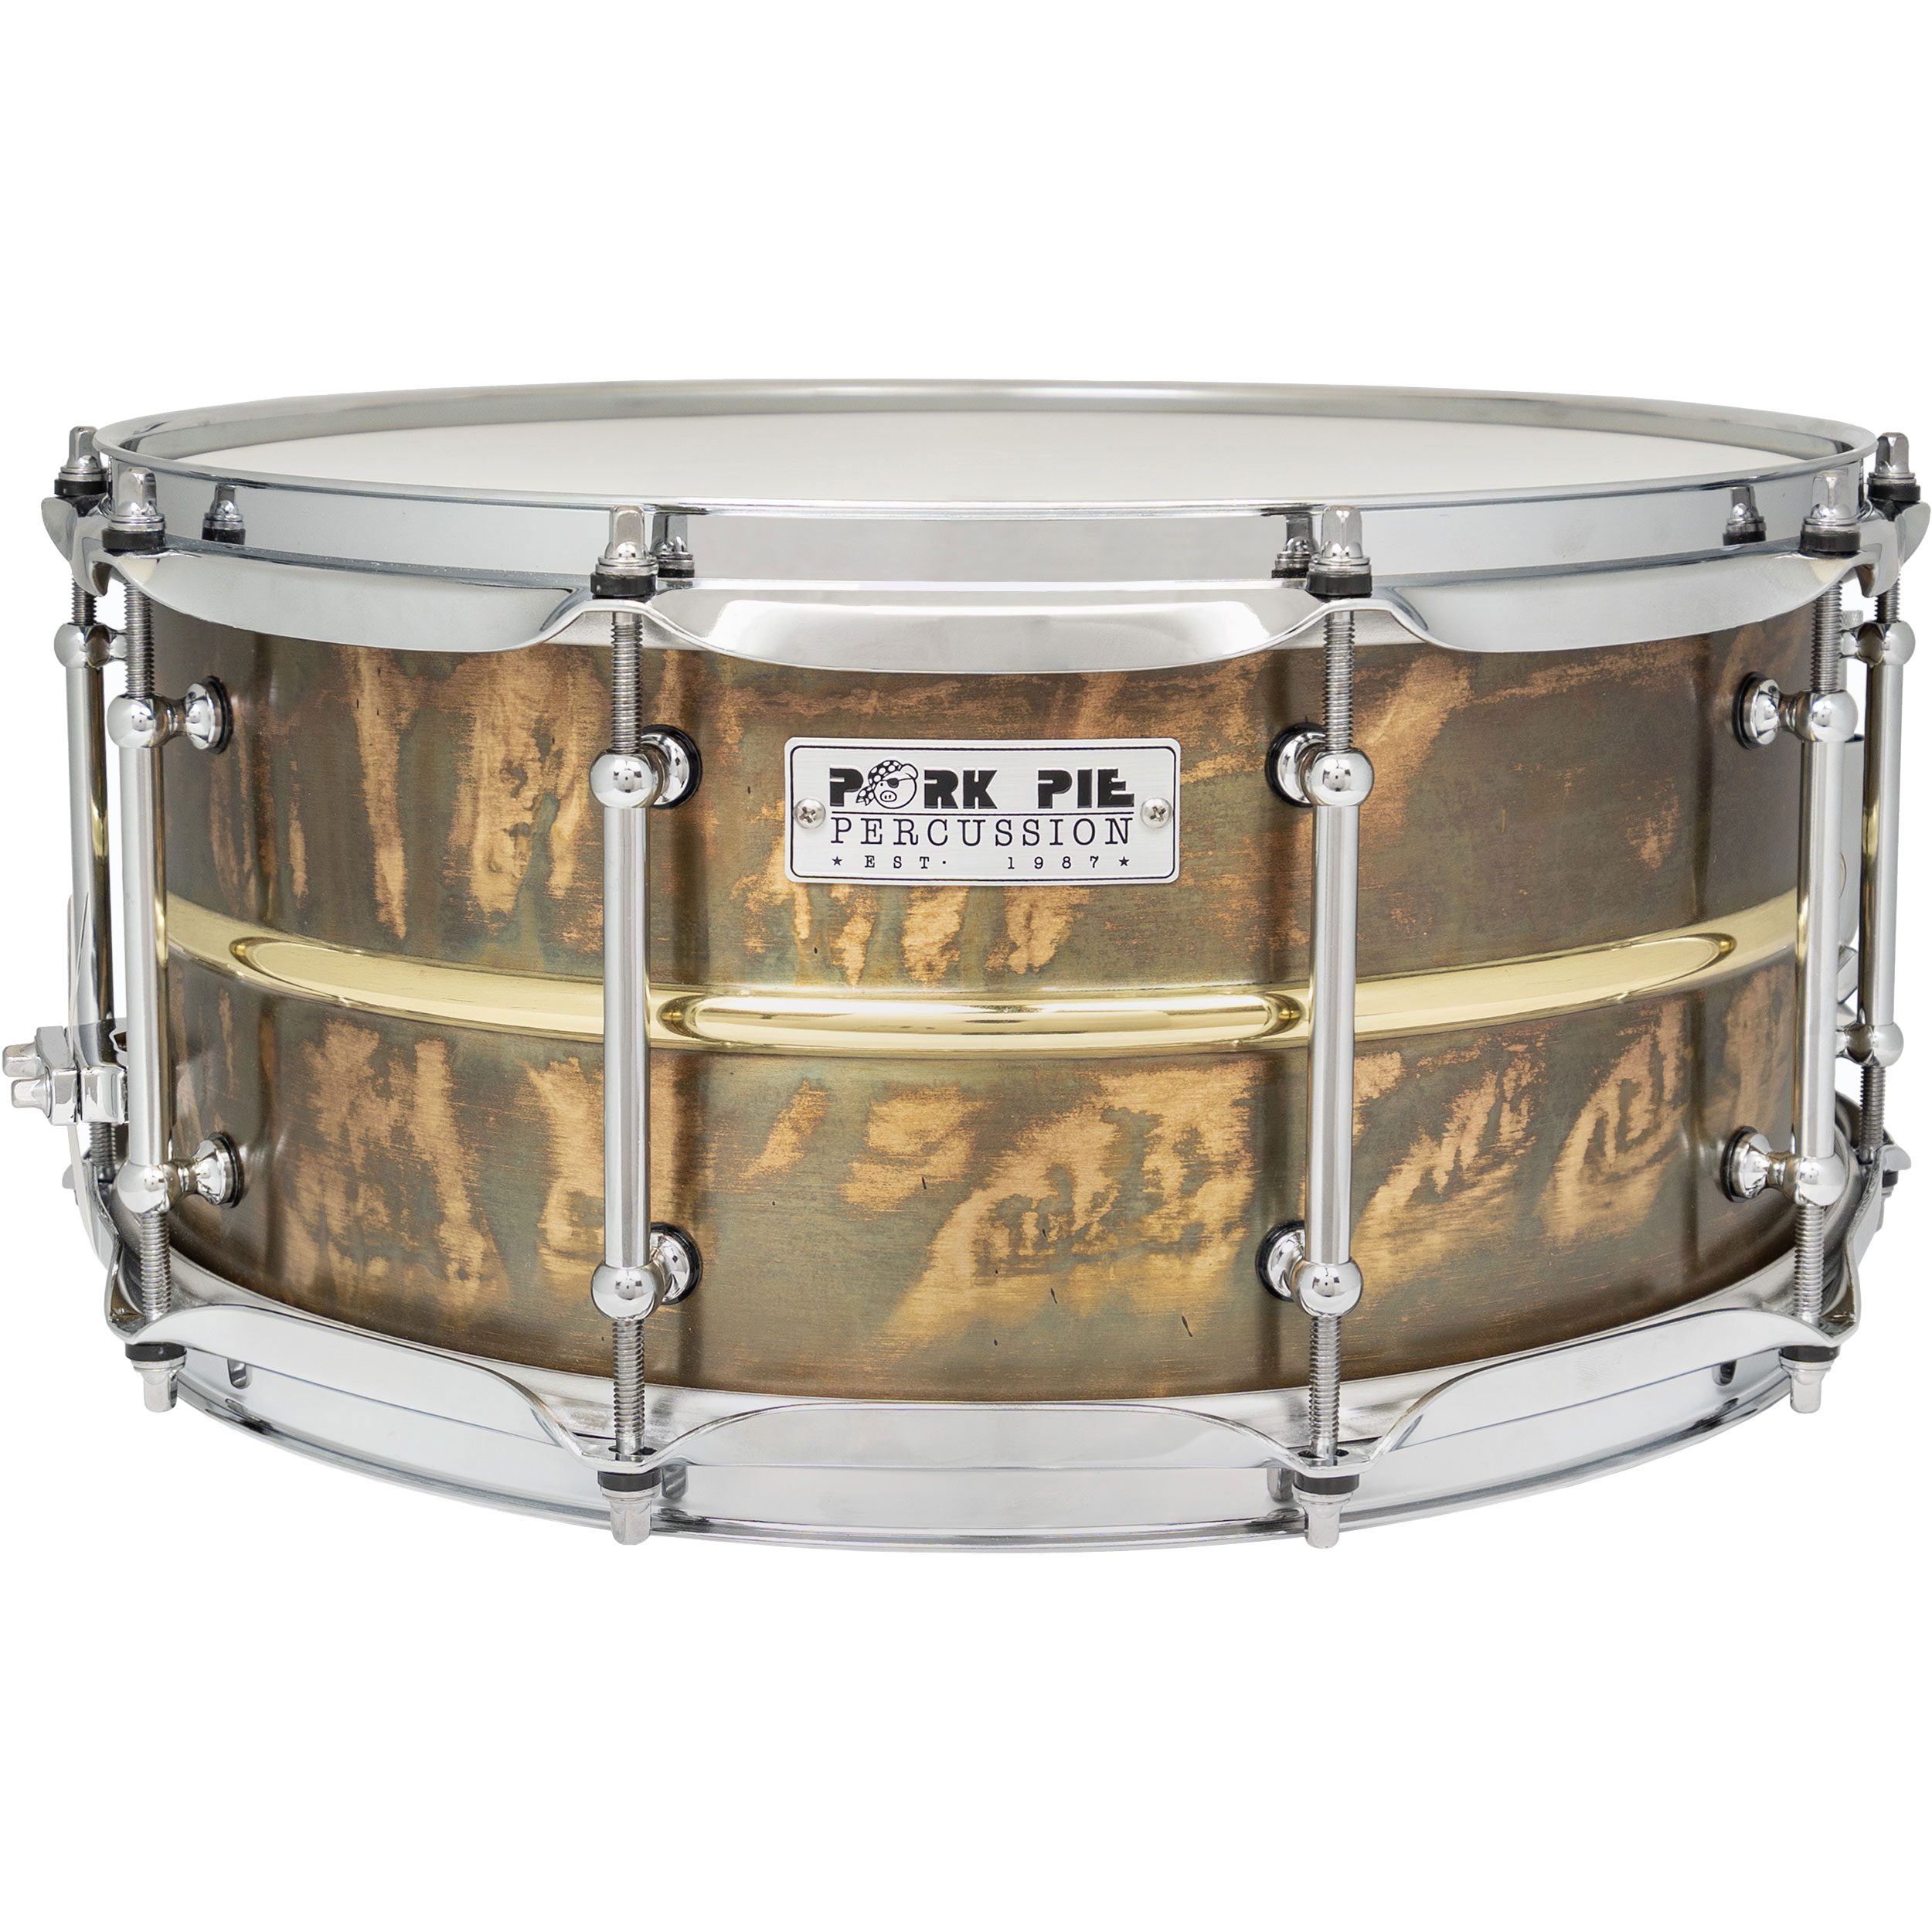 "Pork Pie Percussion 6.5"" x 14"" Patina Brass Snare Drum with Polished Bead"